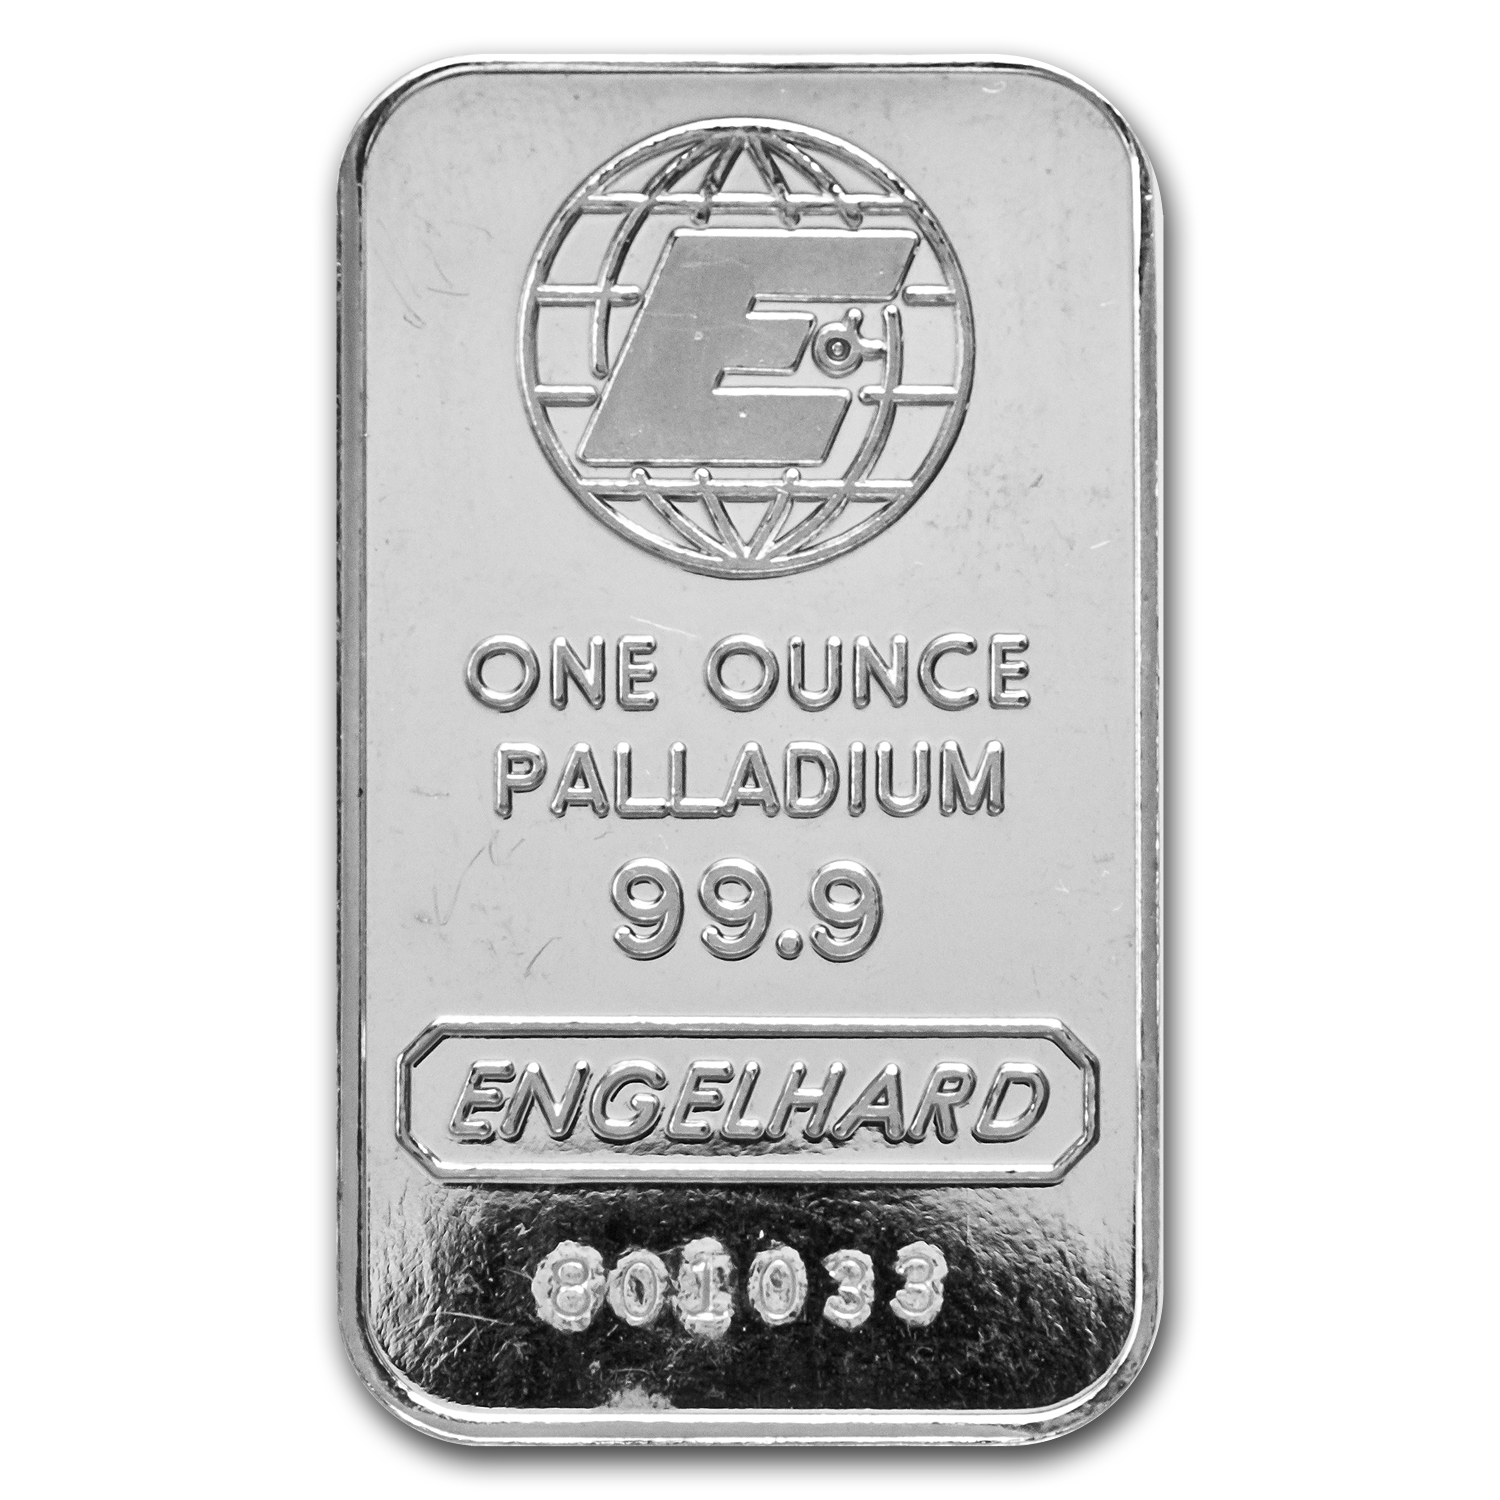 1 oz Engelhard Palladium Bar ('E' Logo, No Assay) .999 Fine